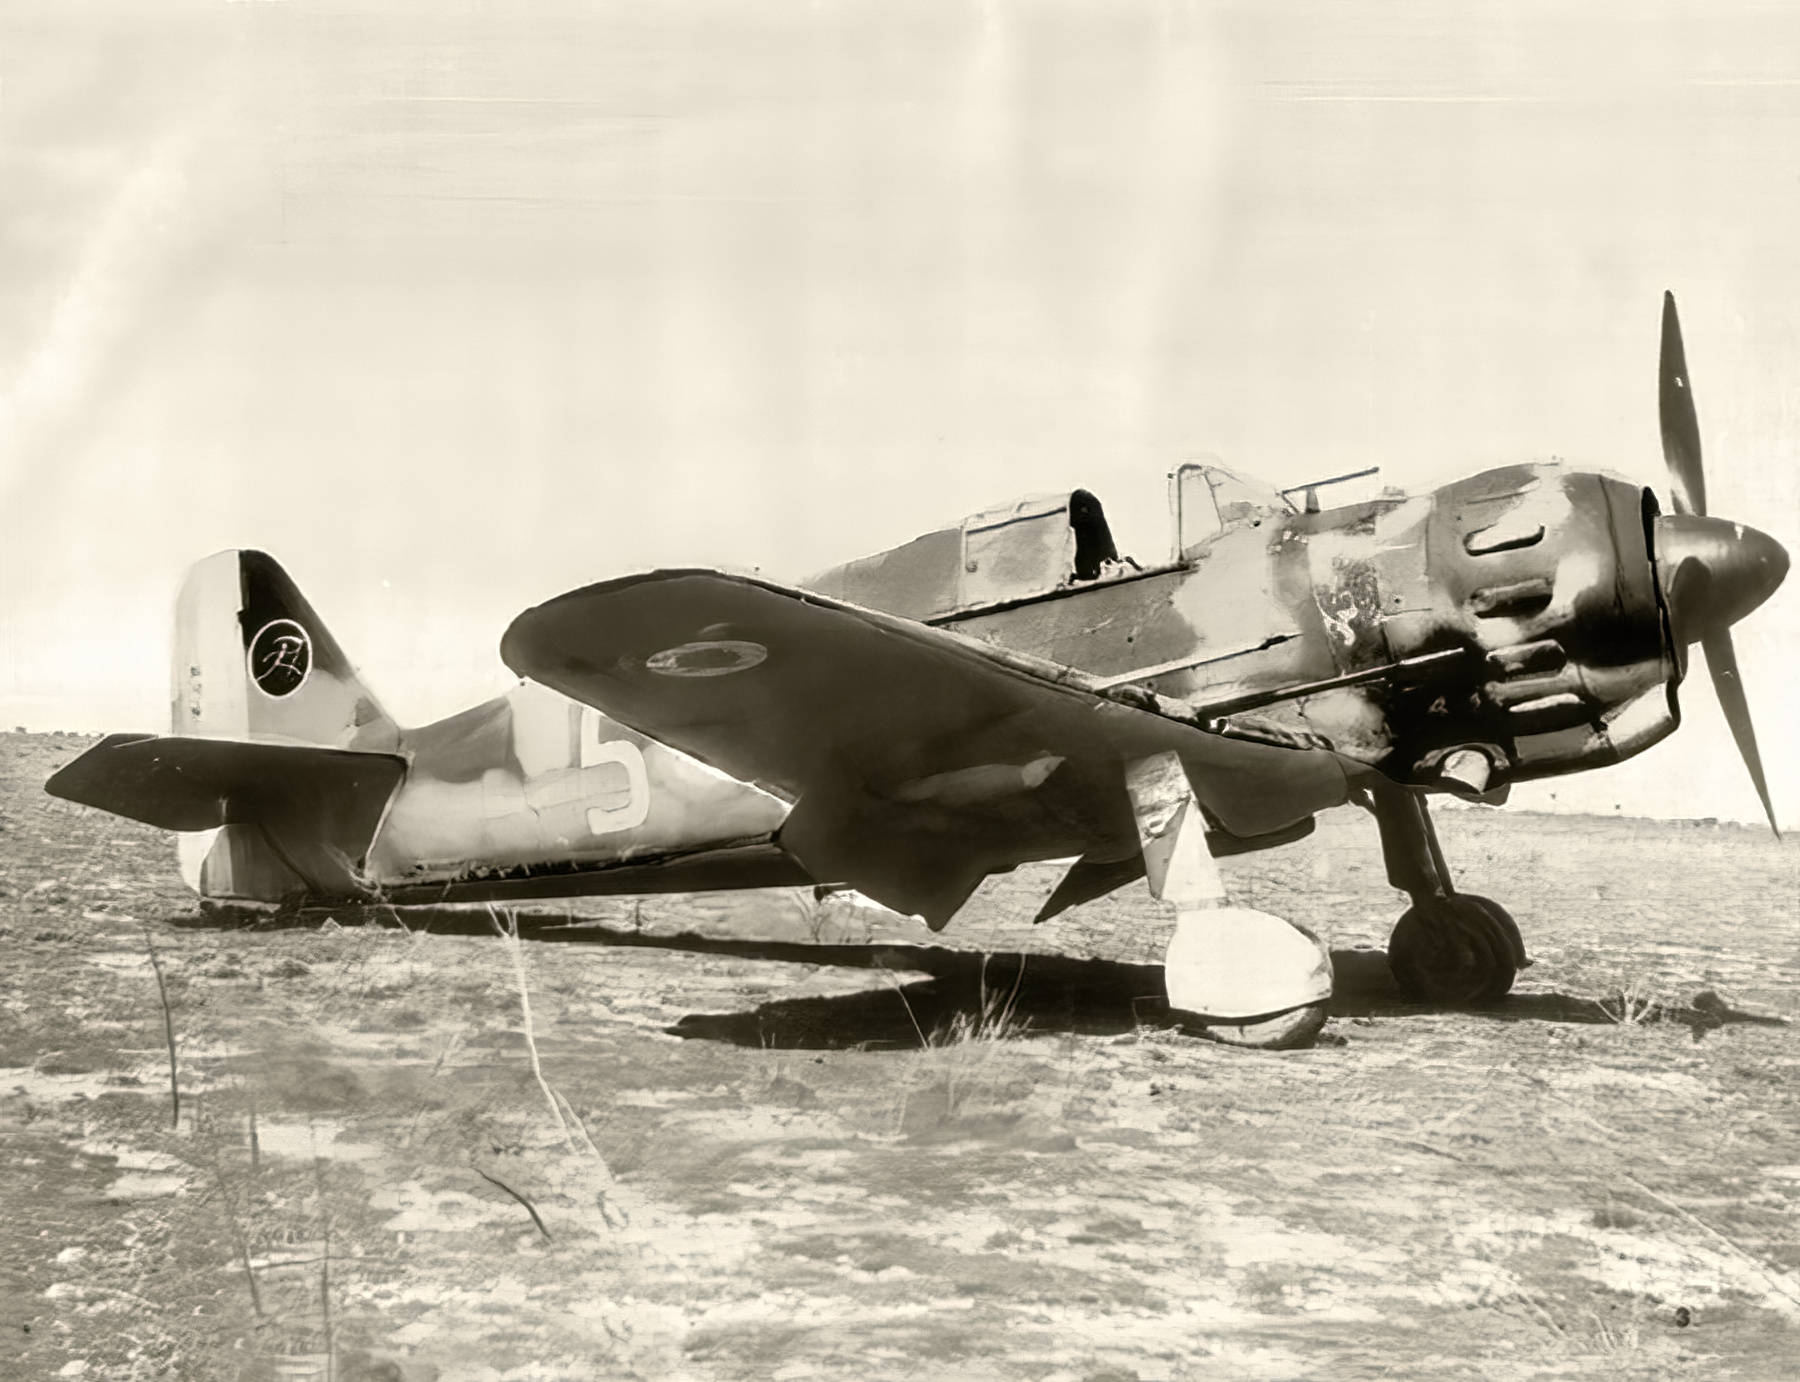 French Airforce Bloch MB 152C1 White 5 captured after the fall of France 1940 ebay 01